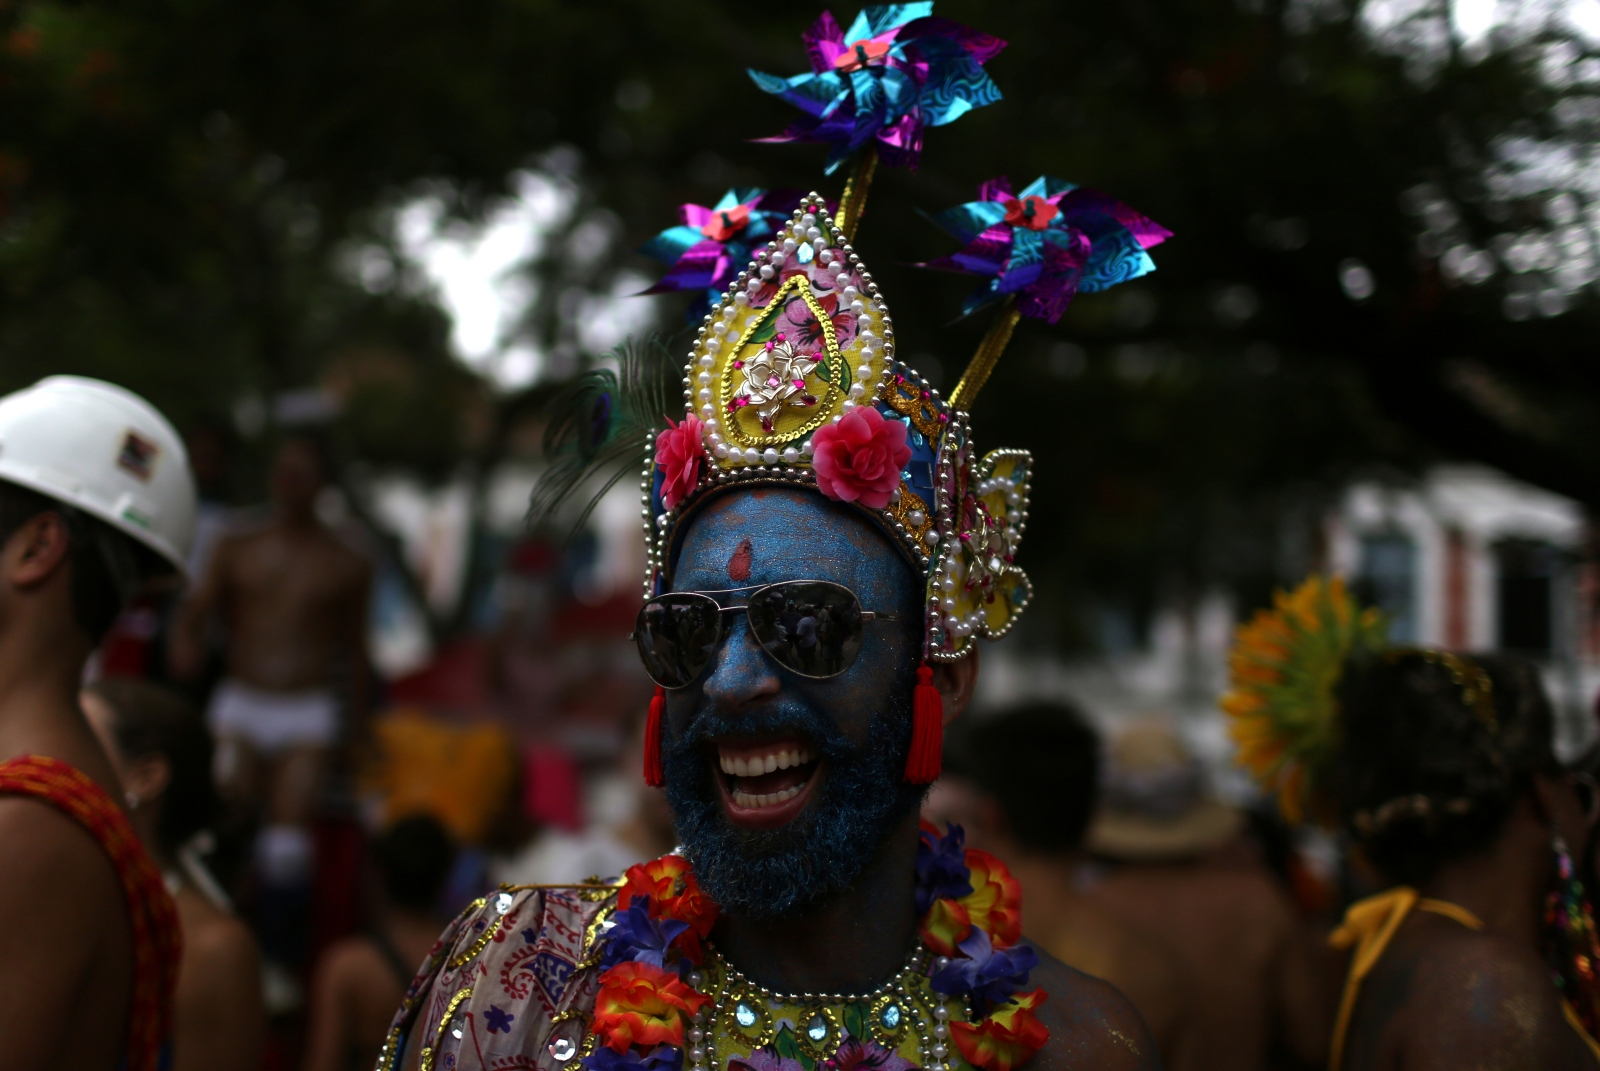 The annual carnival is famed for outlandish costumes and samba parades